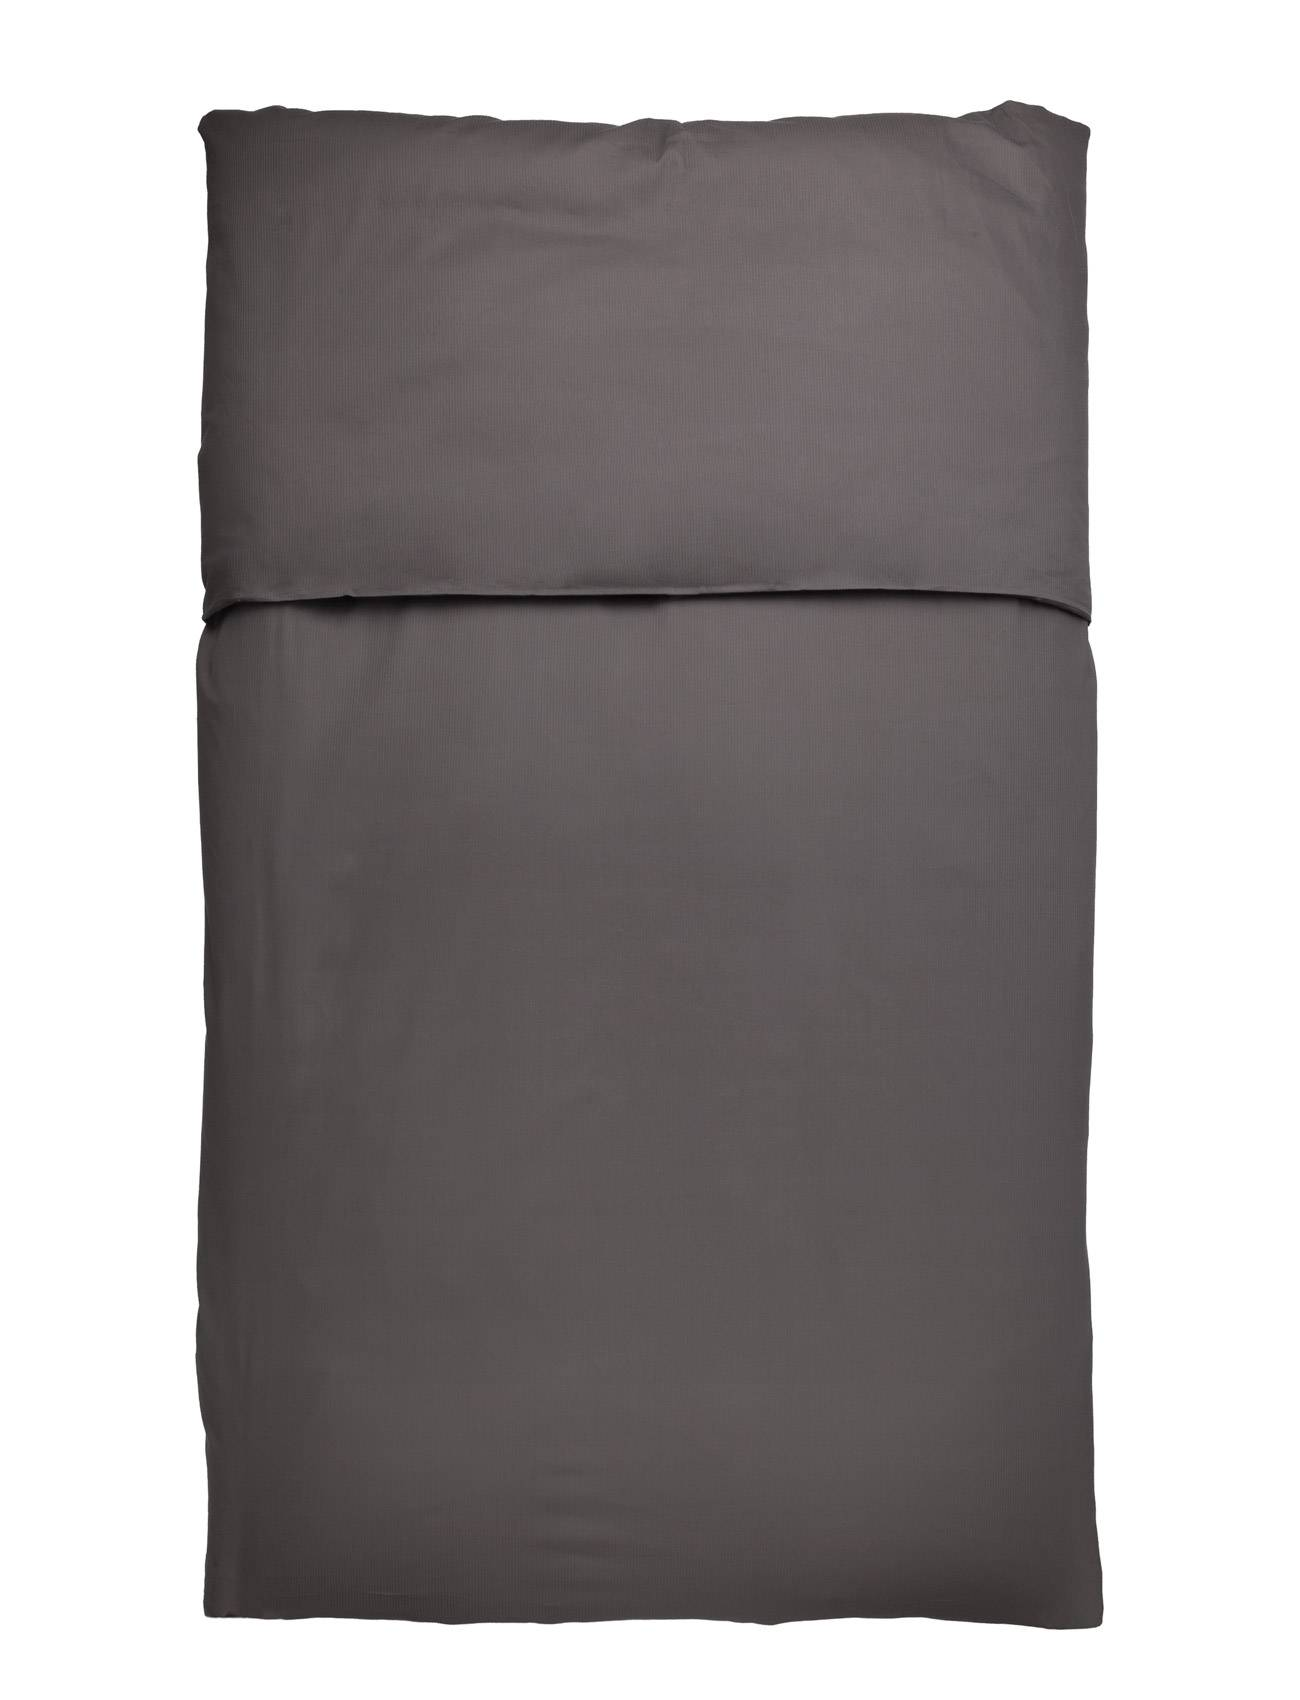 Lexington Company Home Urban Gray Duvet